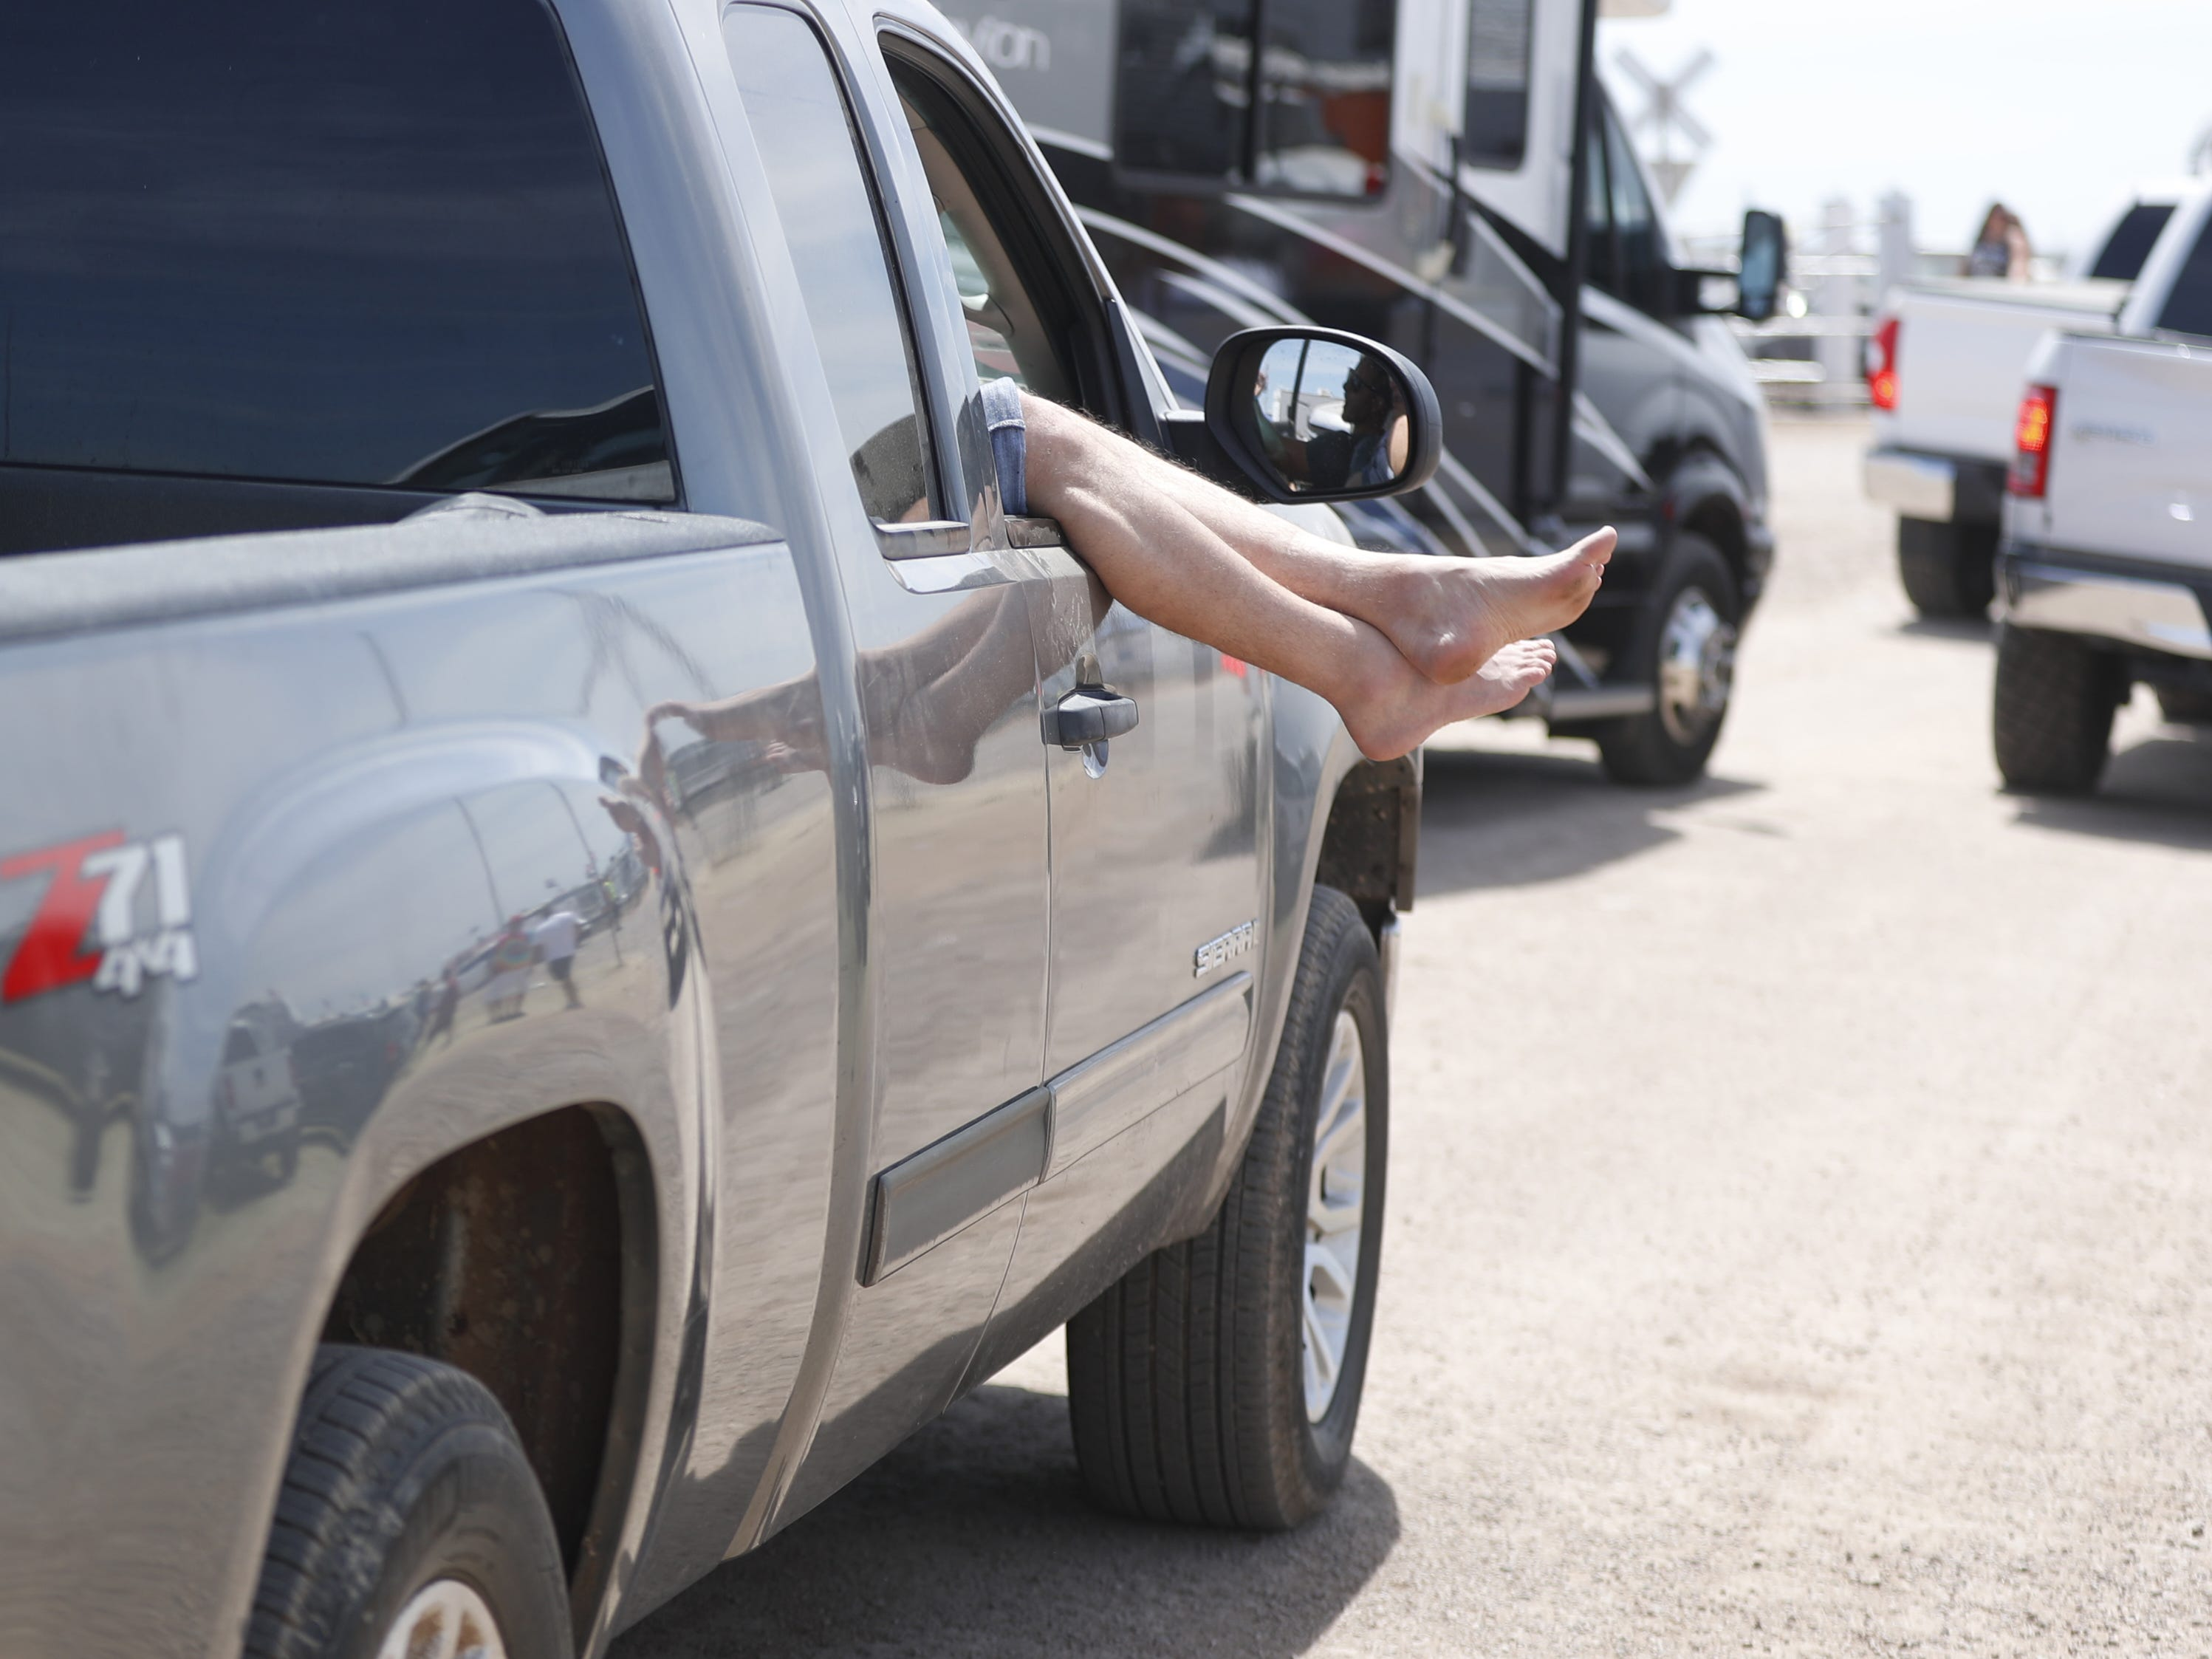 Feet stick out from a car window as people wait to leave during Country Thunder in Florence, Ariz. on Sunday, April 14, 2019.